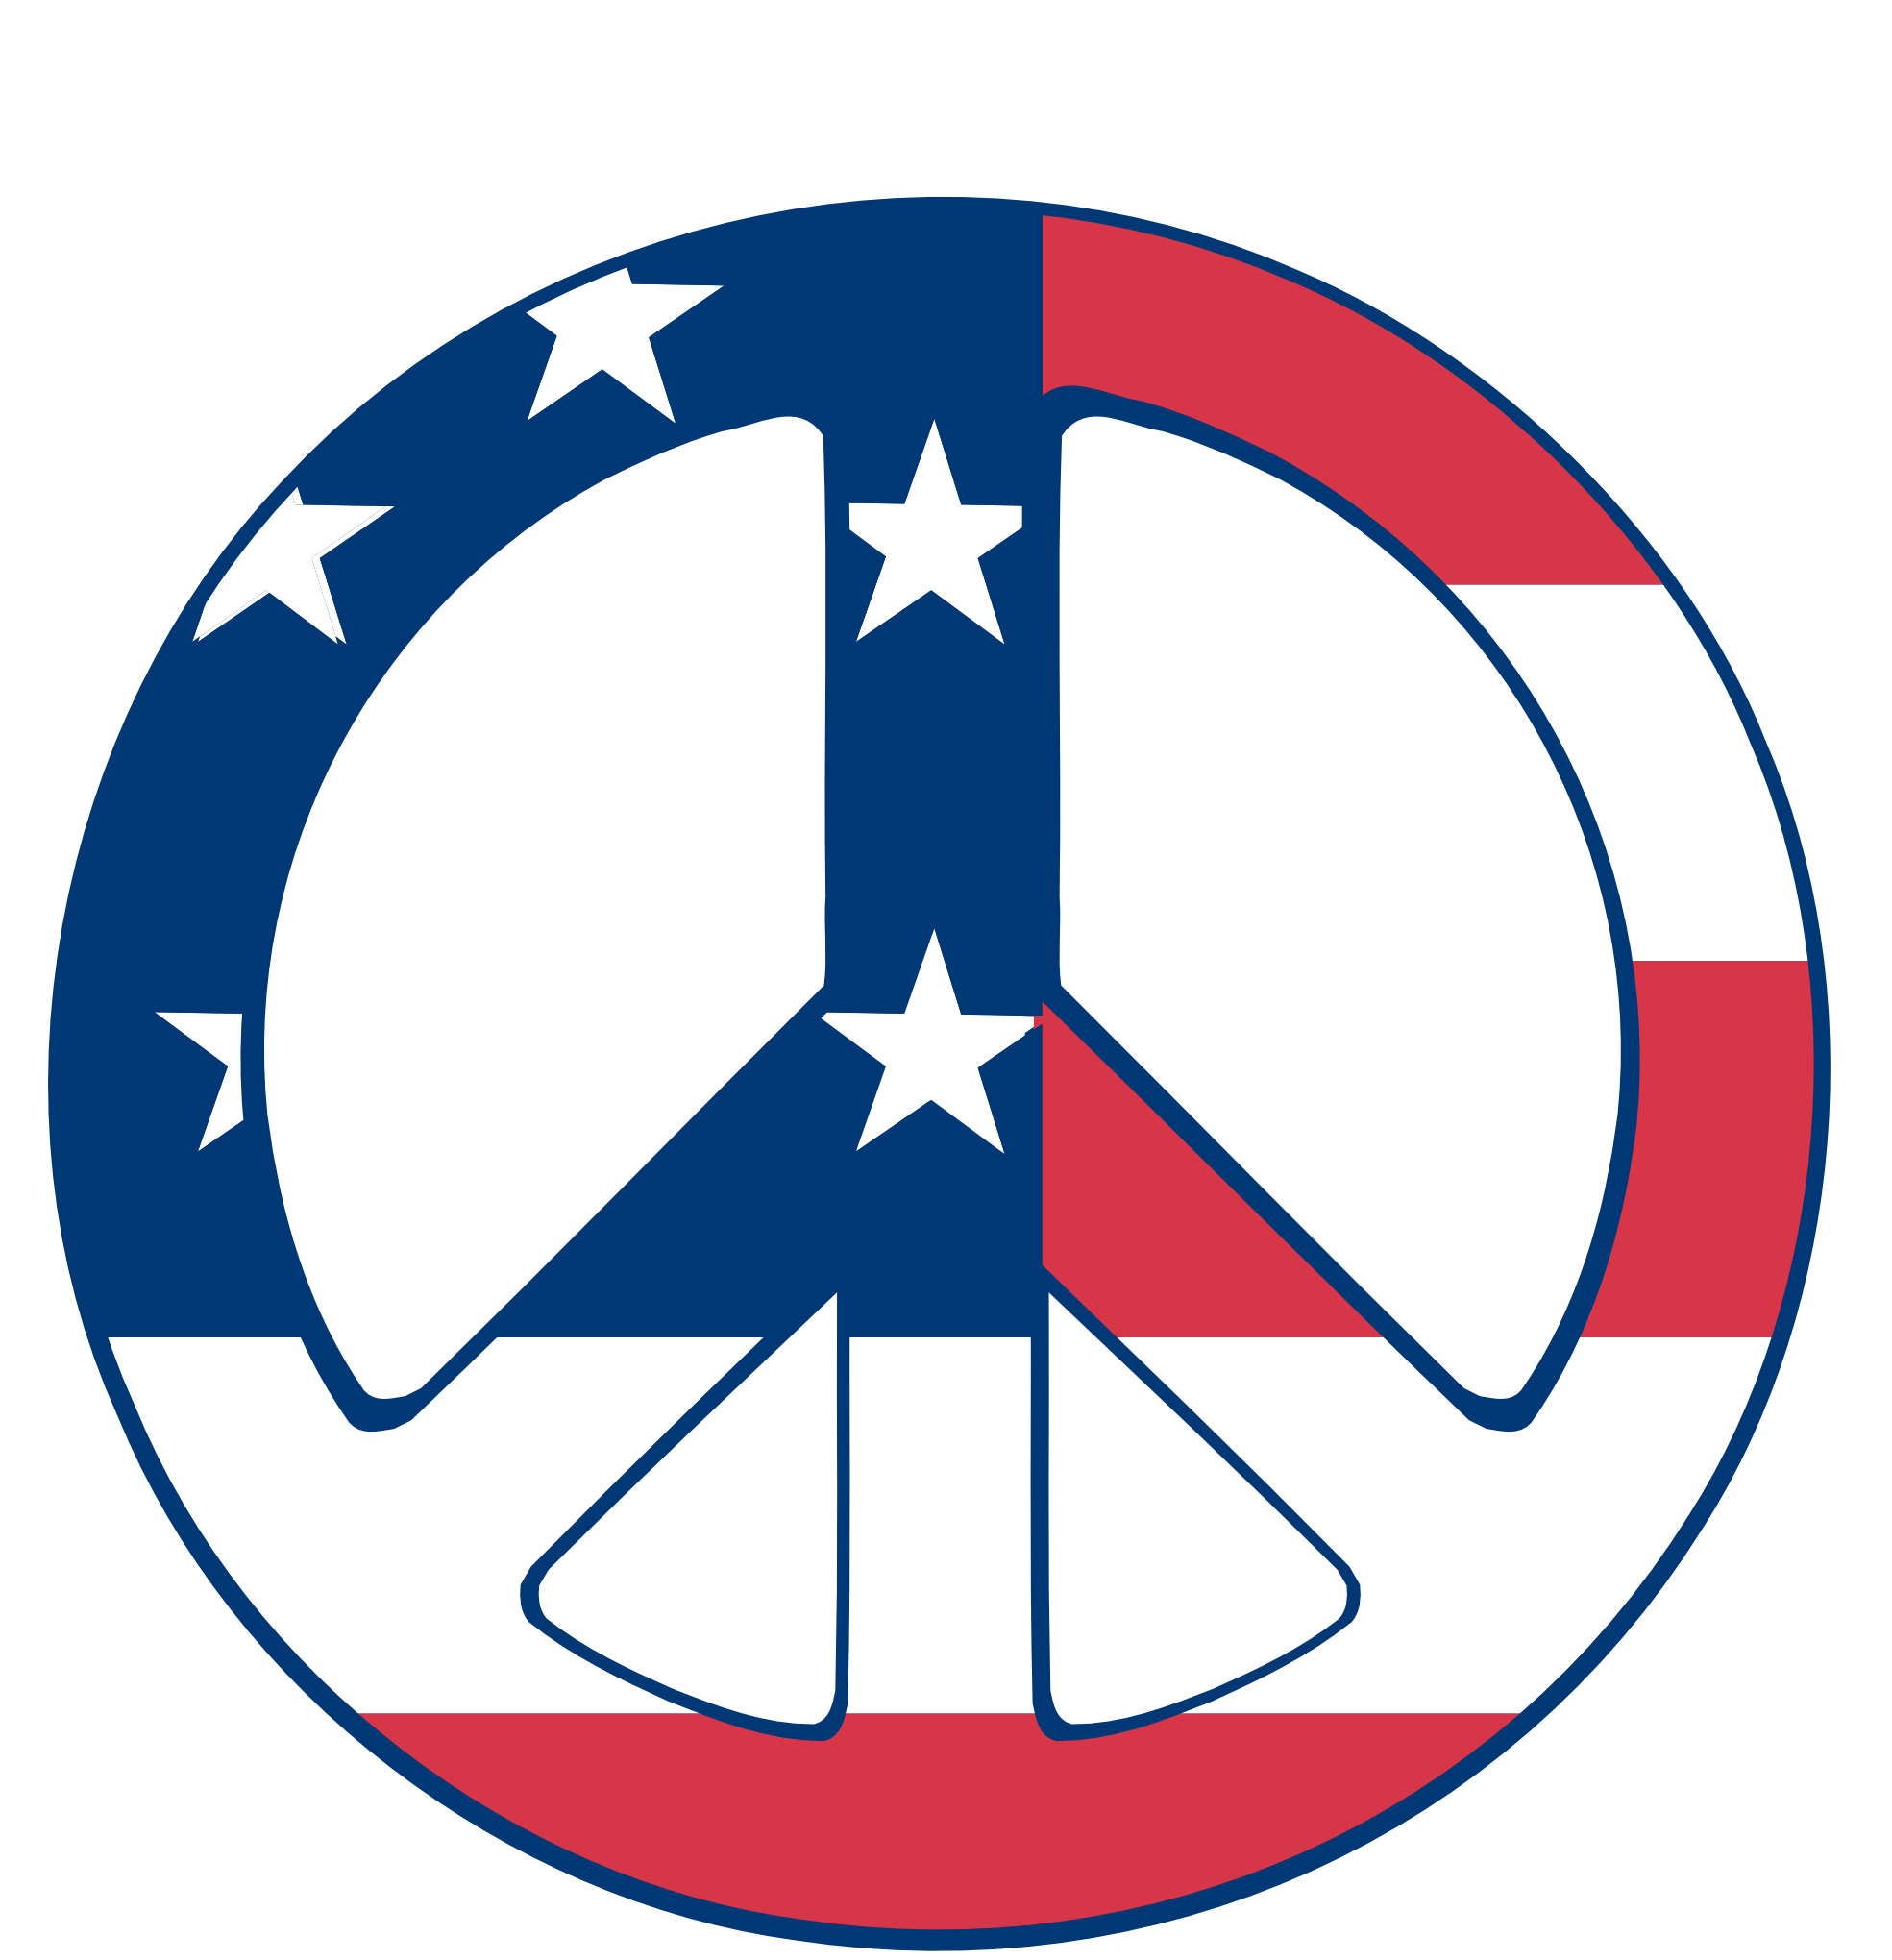 Peace sign clipart hostted